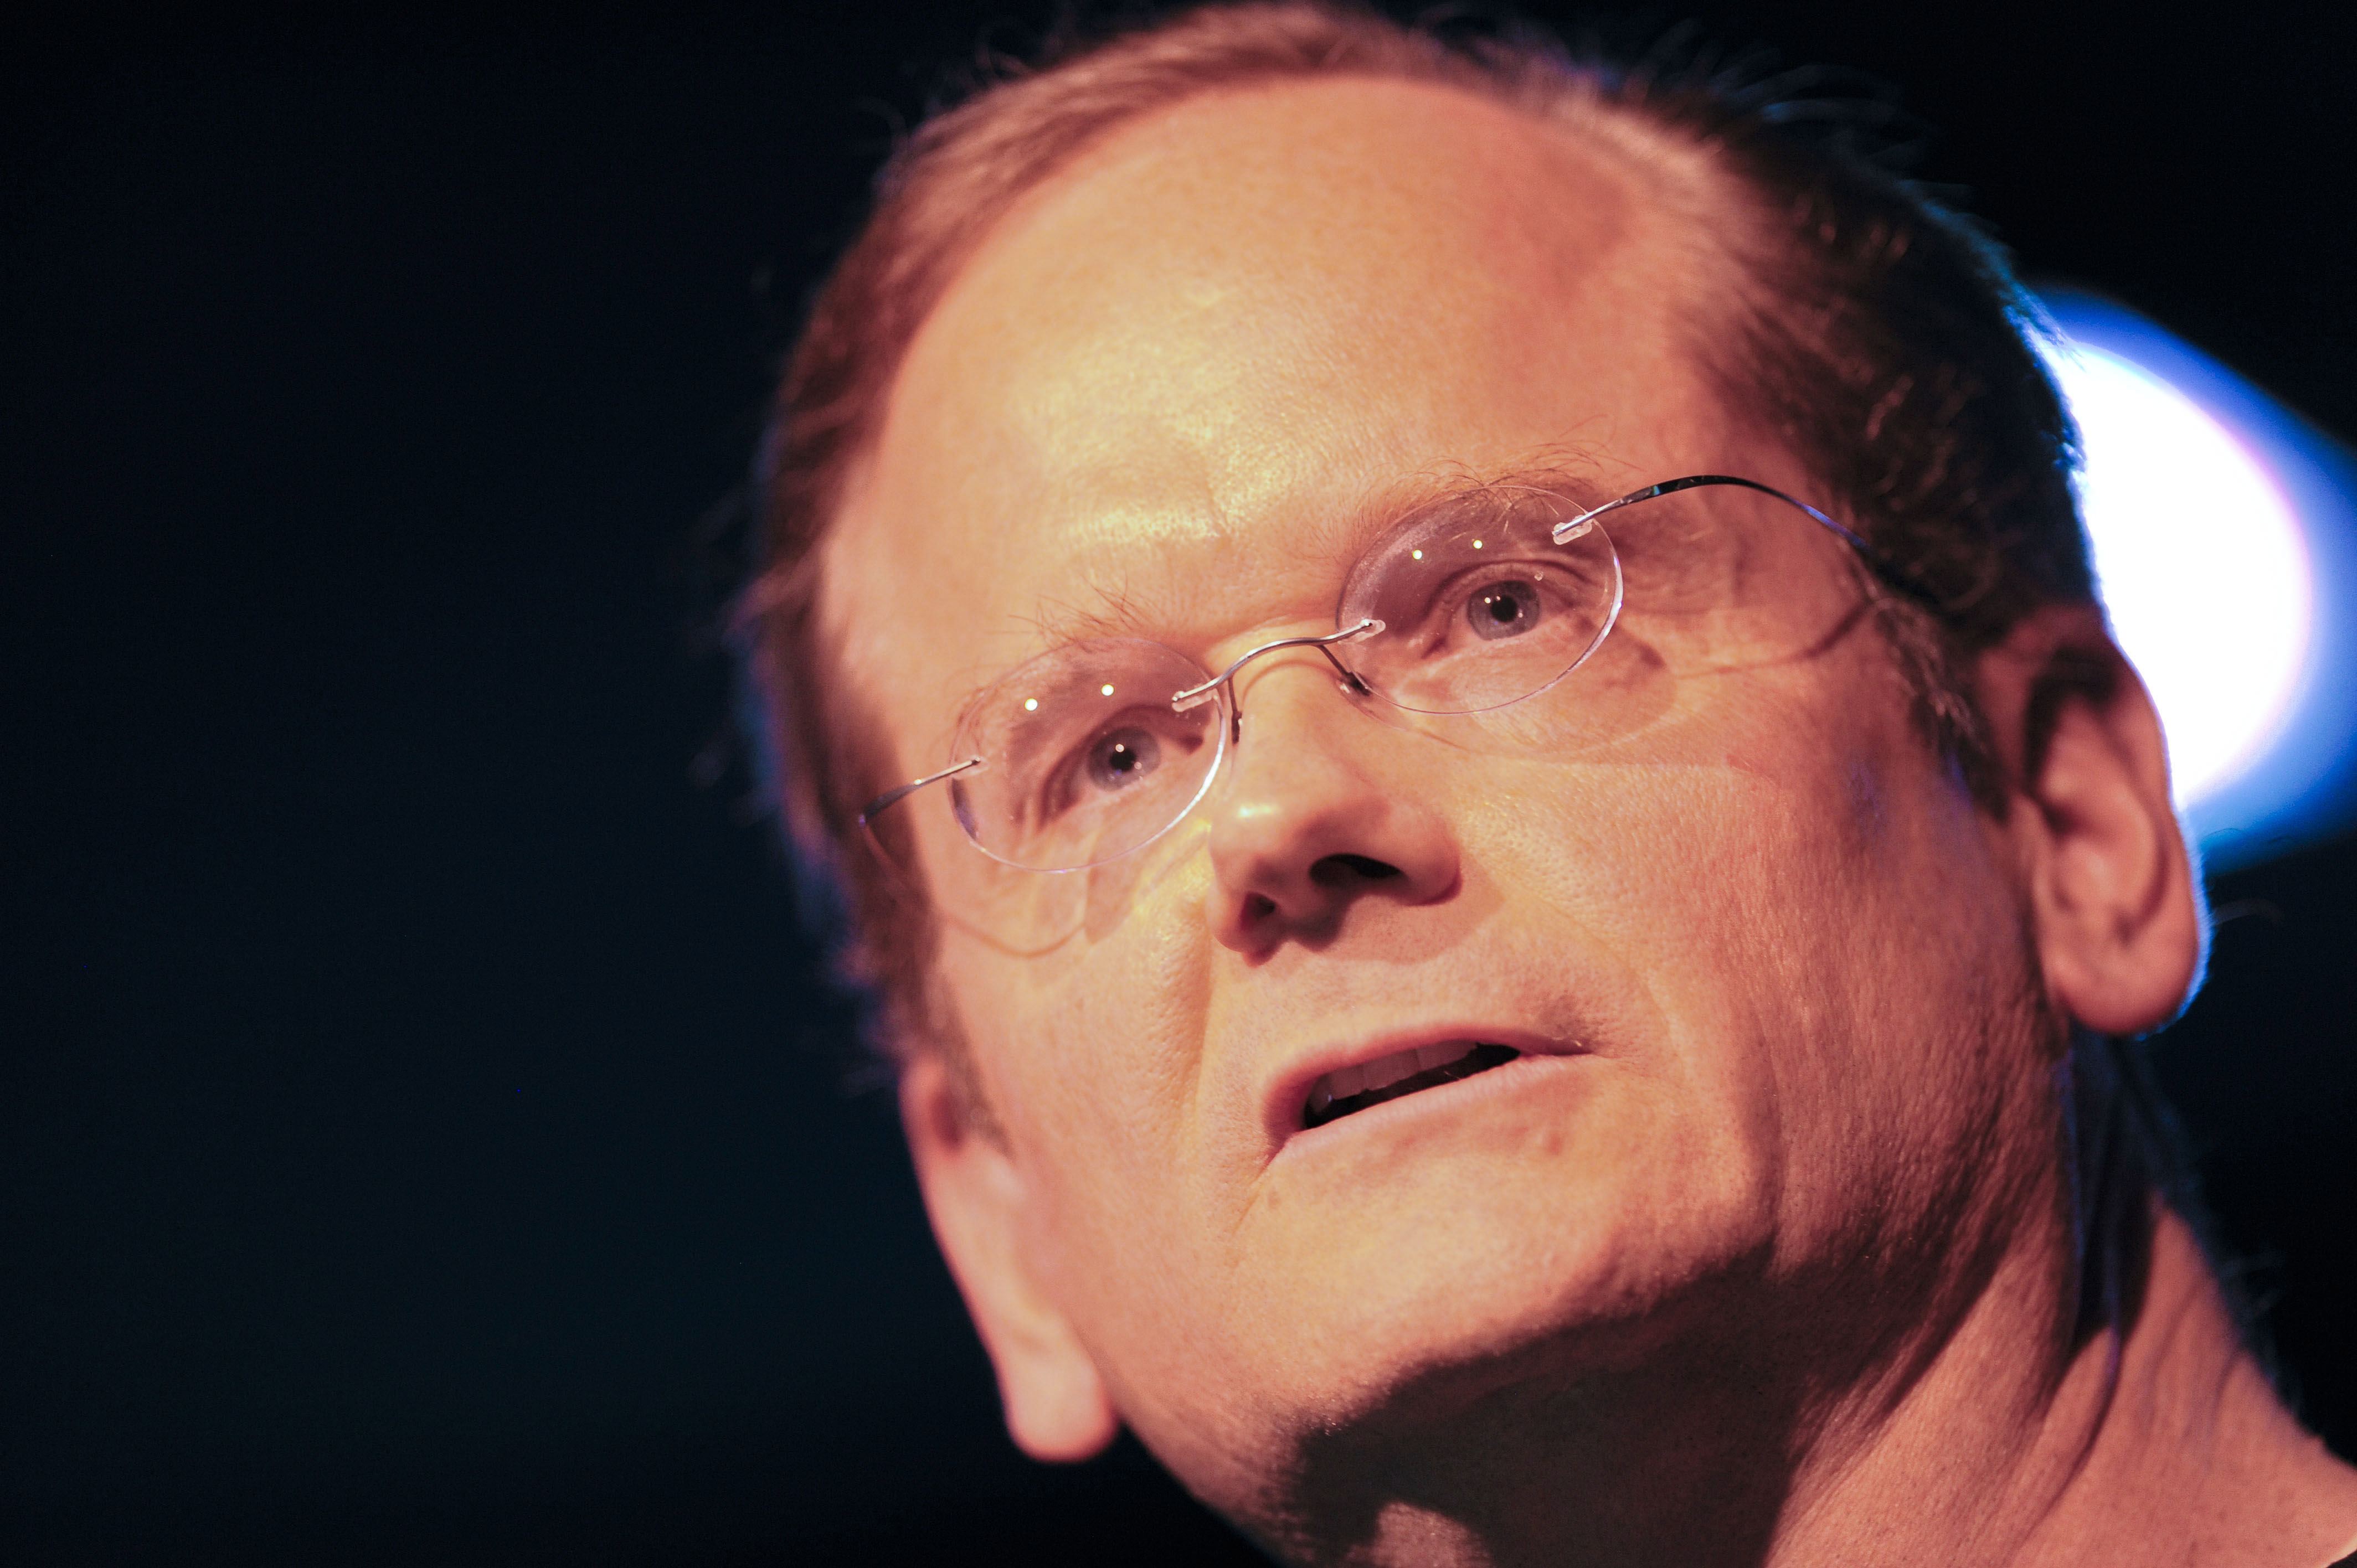 Lawrence Lessig speaks during the Aspen Ideas Festival 2011 on June 27, 2011 in Aspen, Colorado.